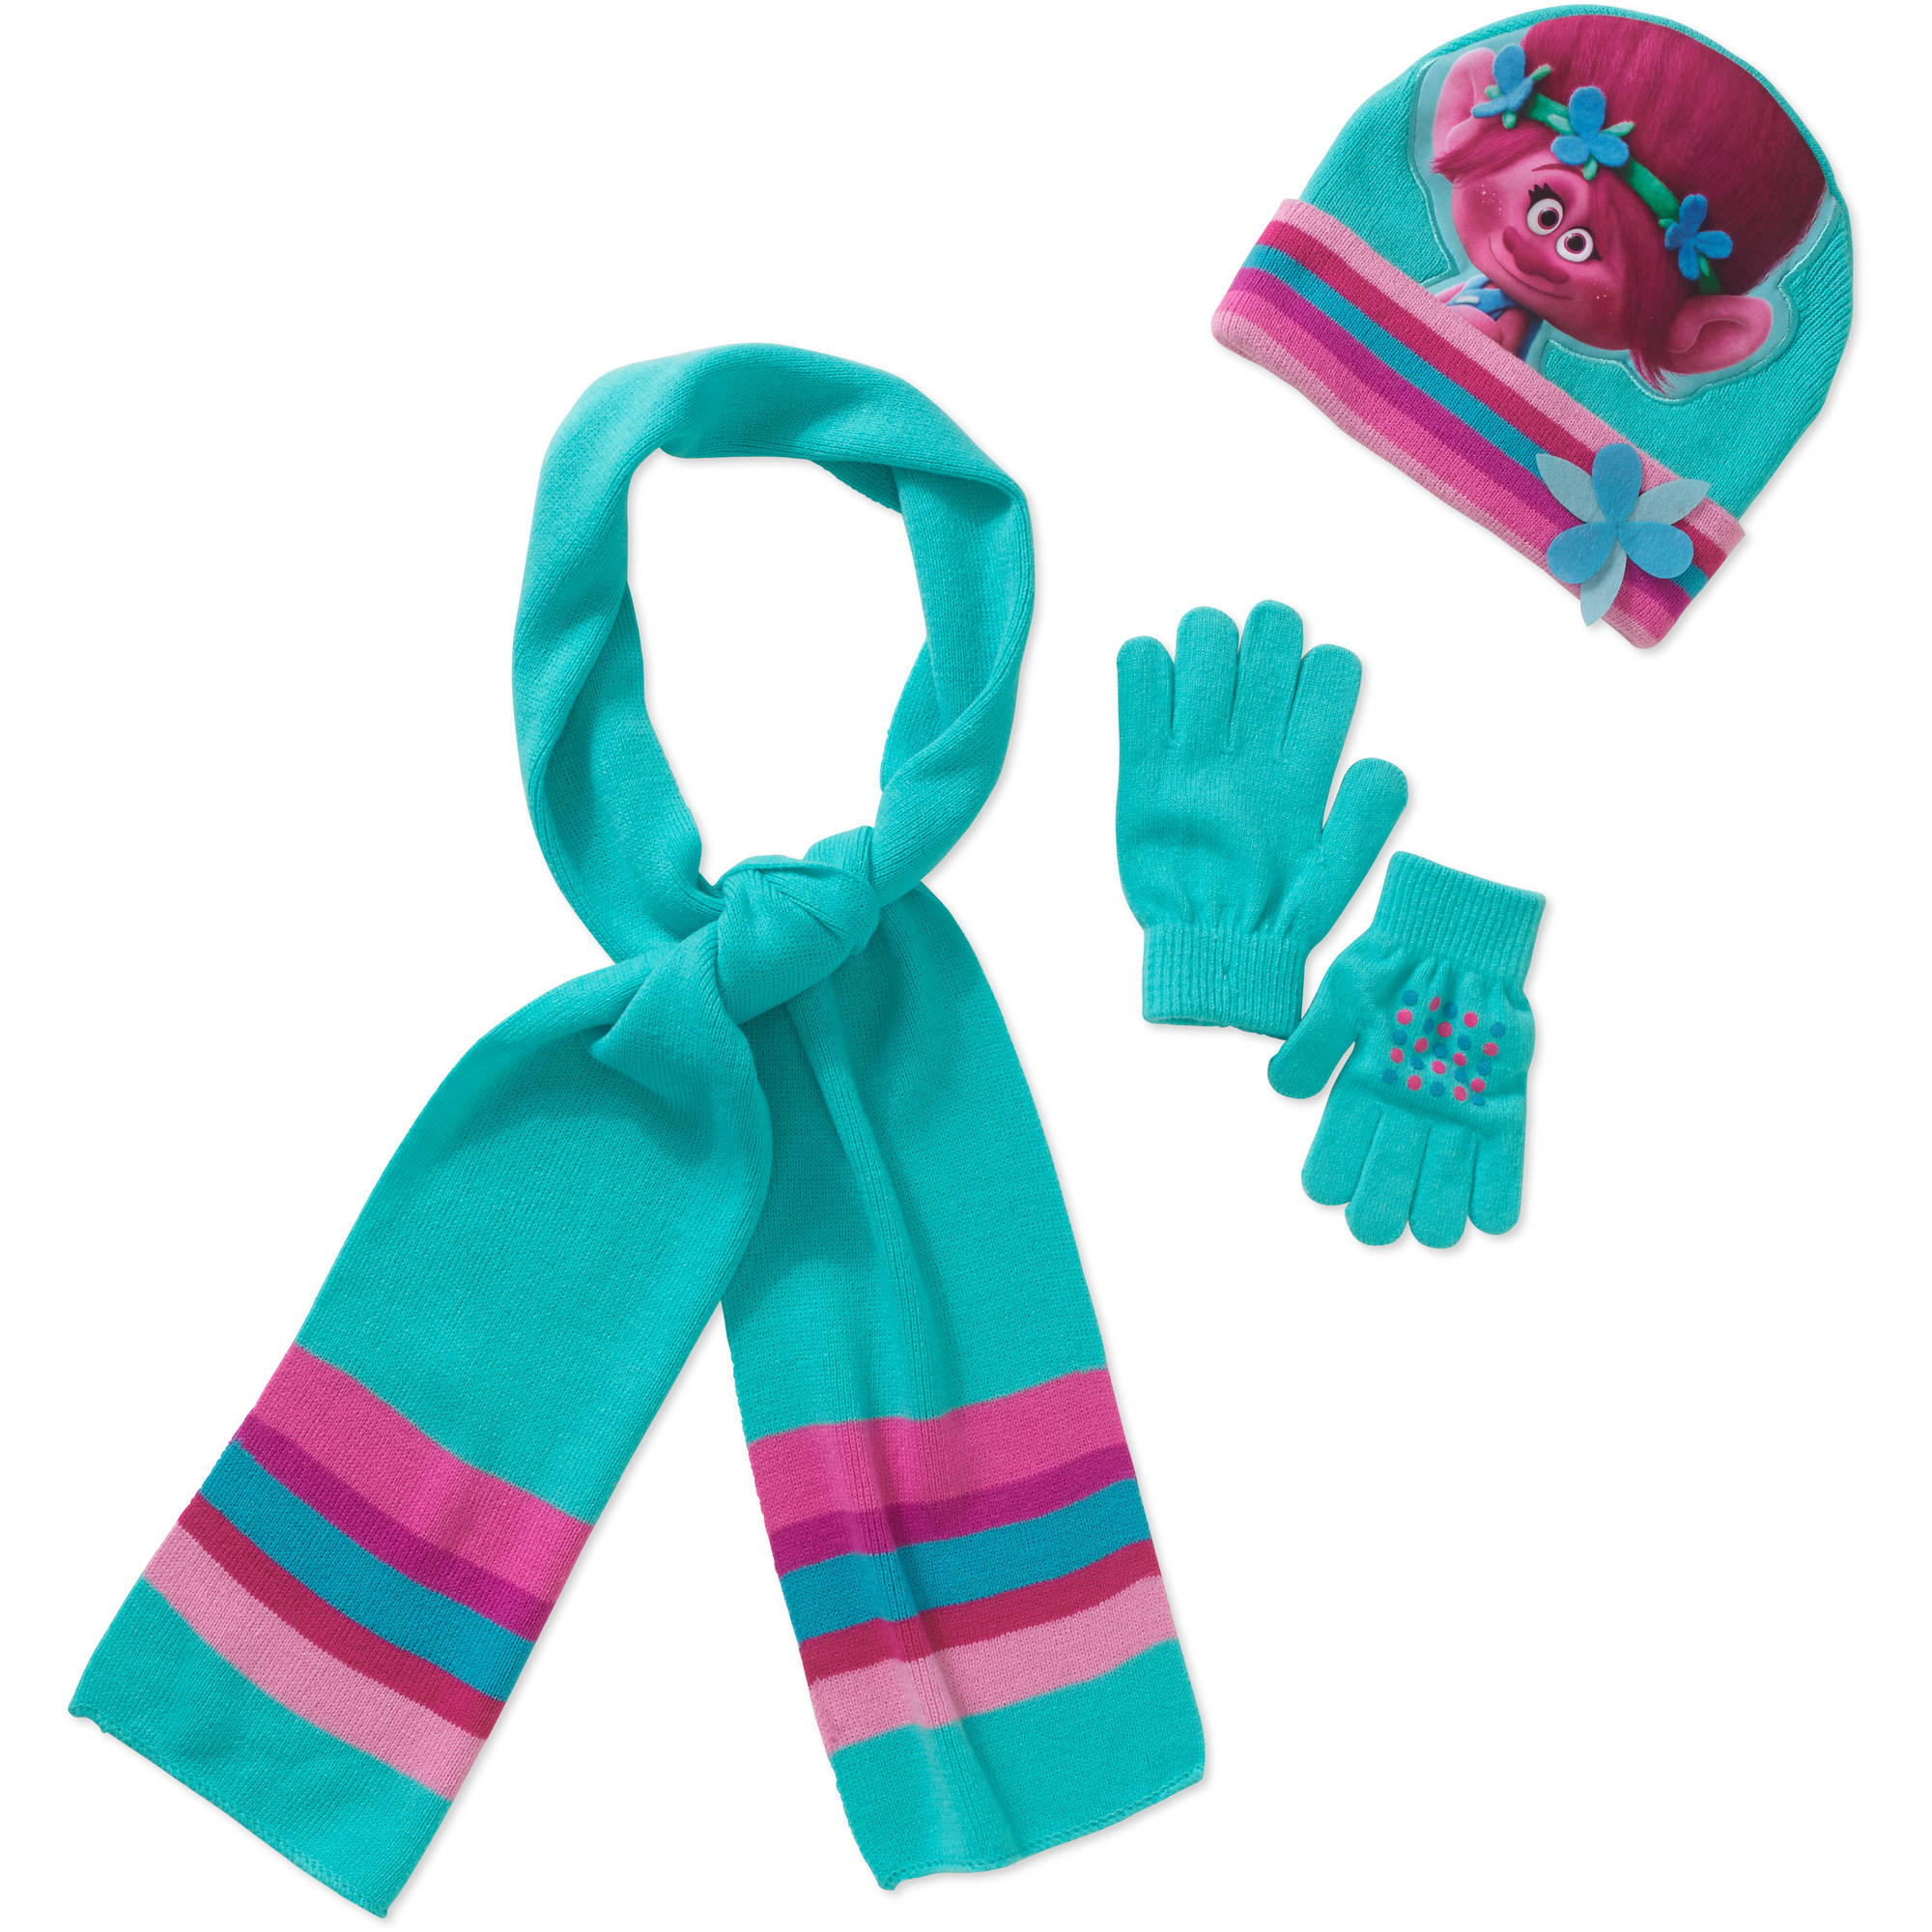 Trolls Girl's Hat, Glove and Scarf 3pc Set